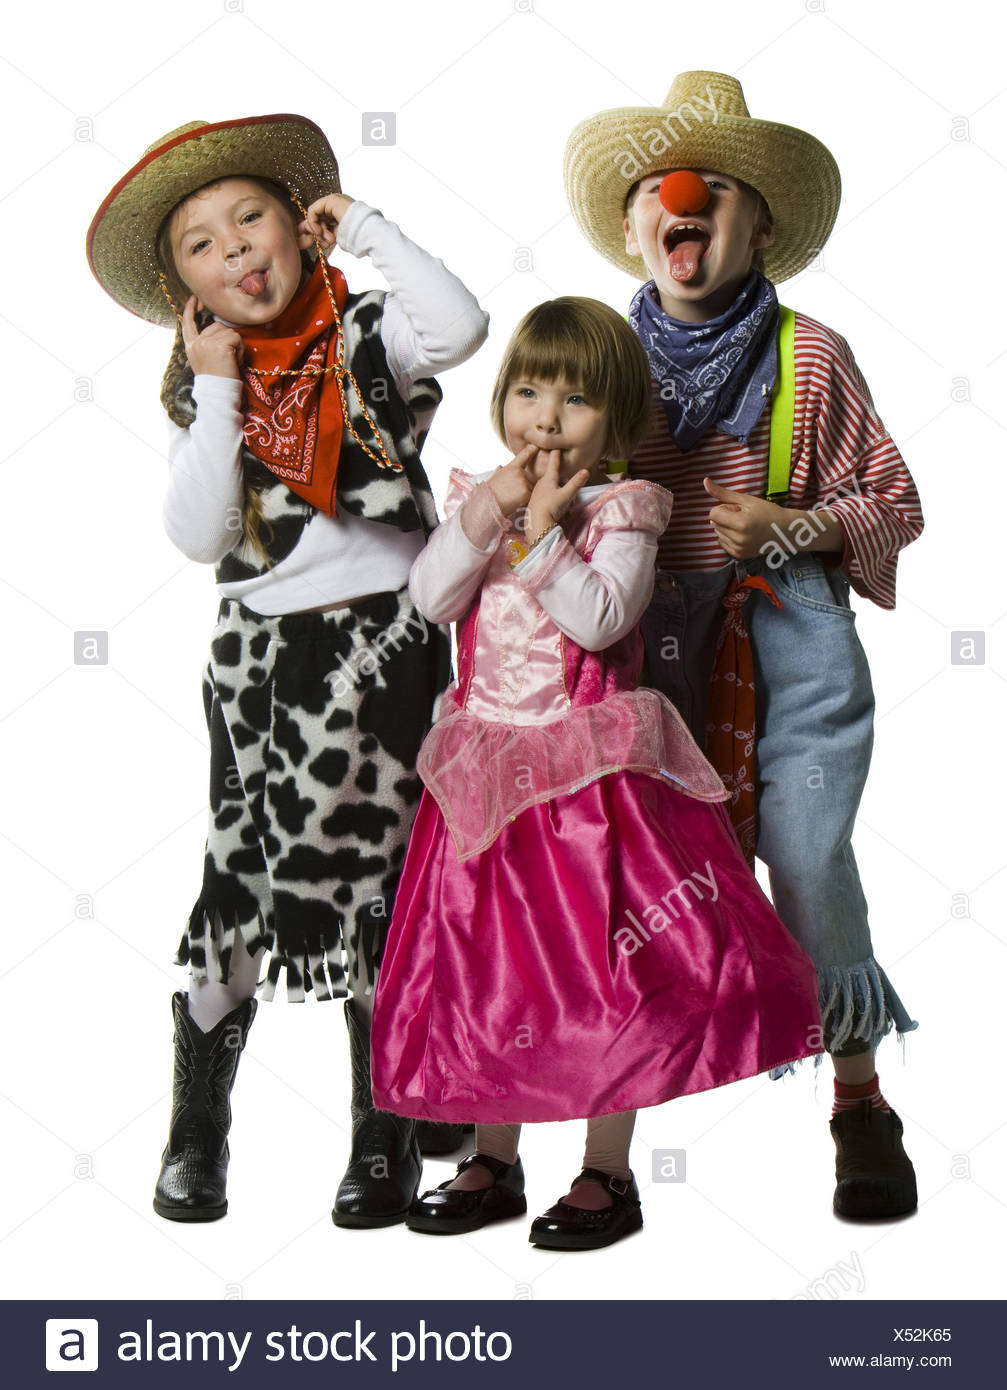 Two girls and a boy making faces in costumes Stock Photo